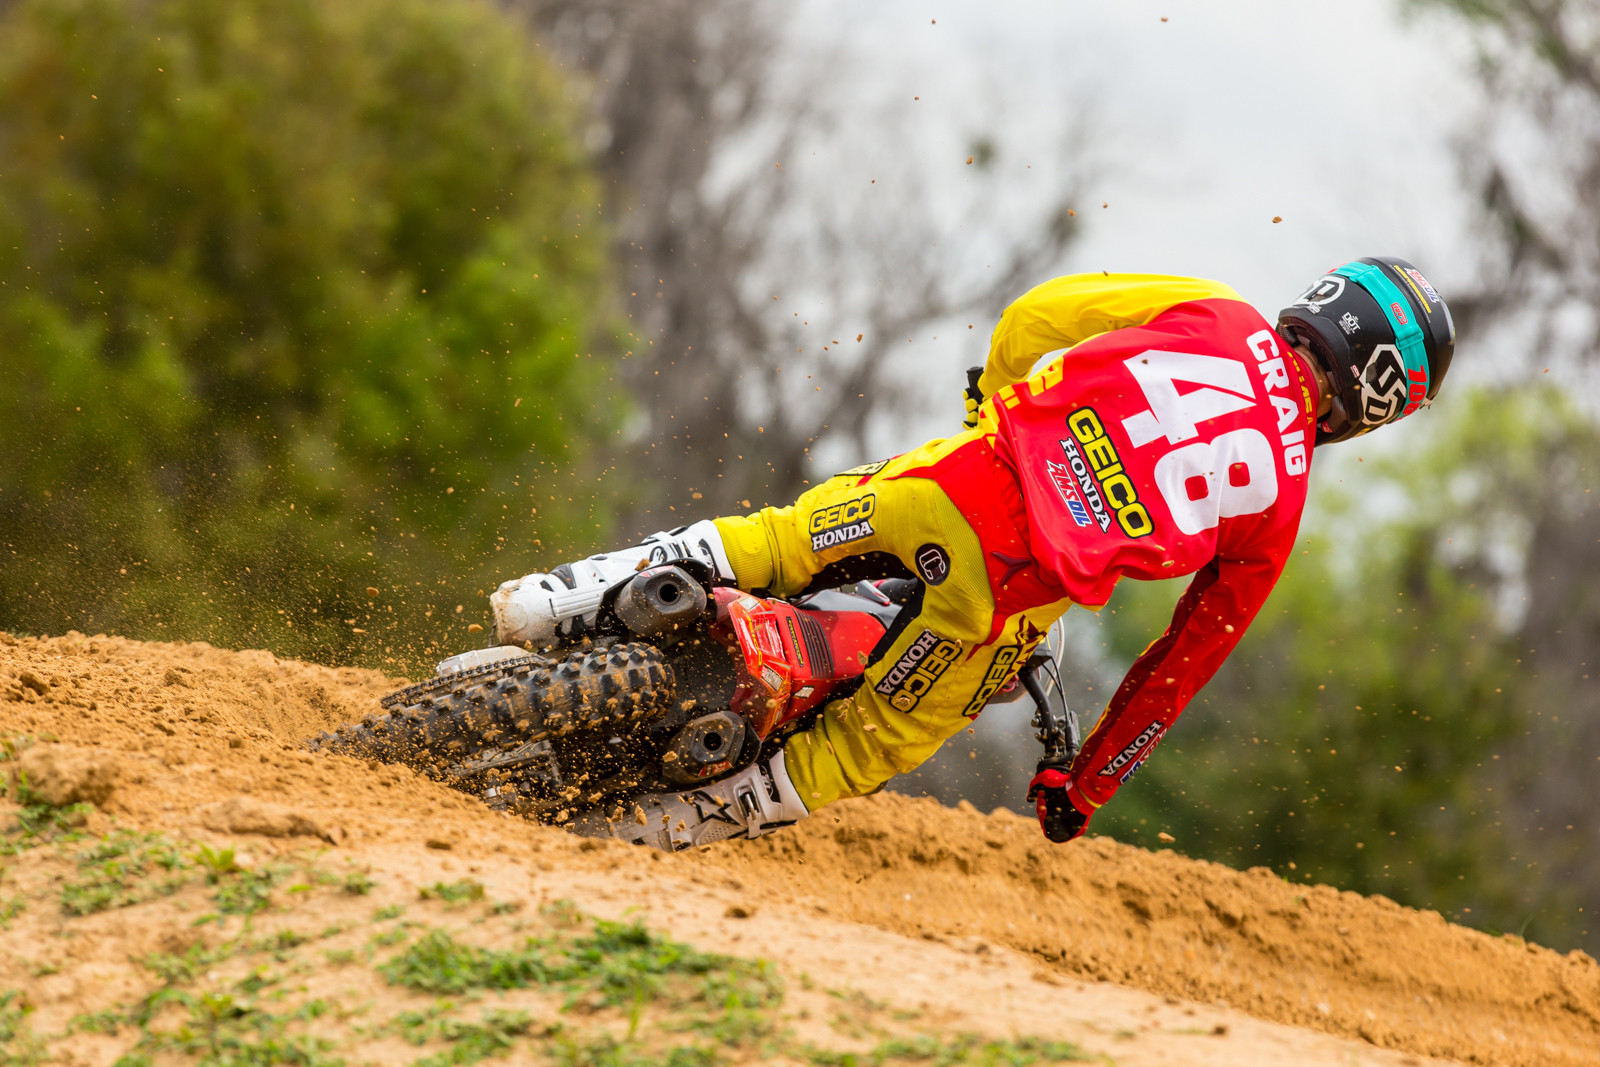 Christian Craig - Photo Gallery: The Nest, Goat Farm, and MTF - Motocross Pictures - Vital MX